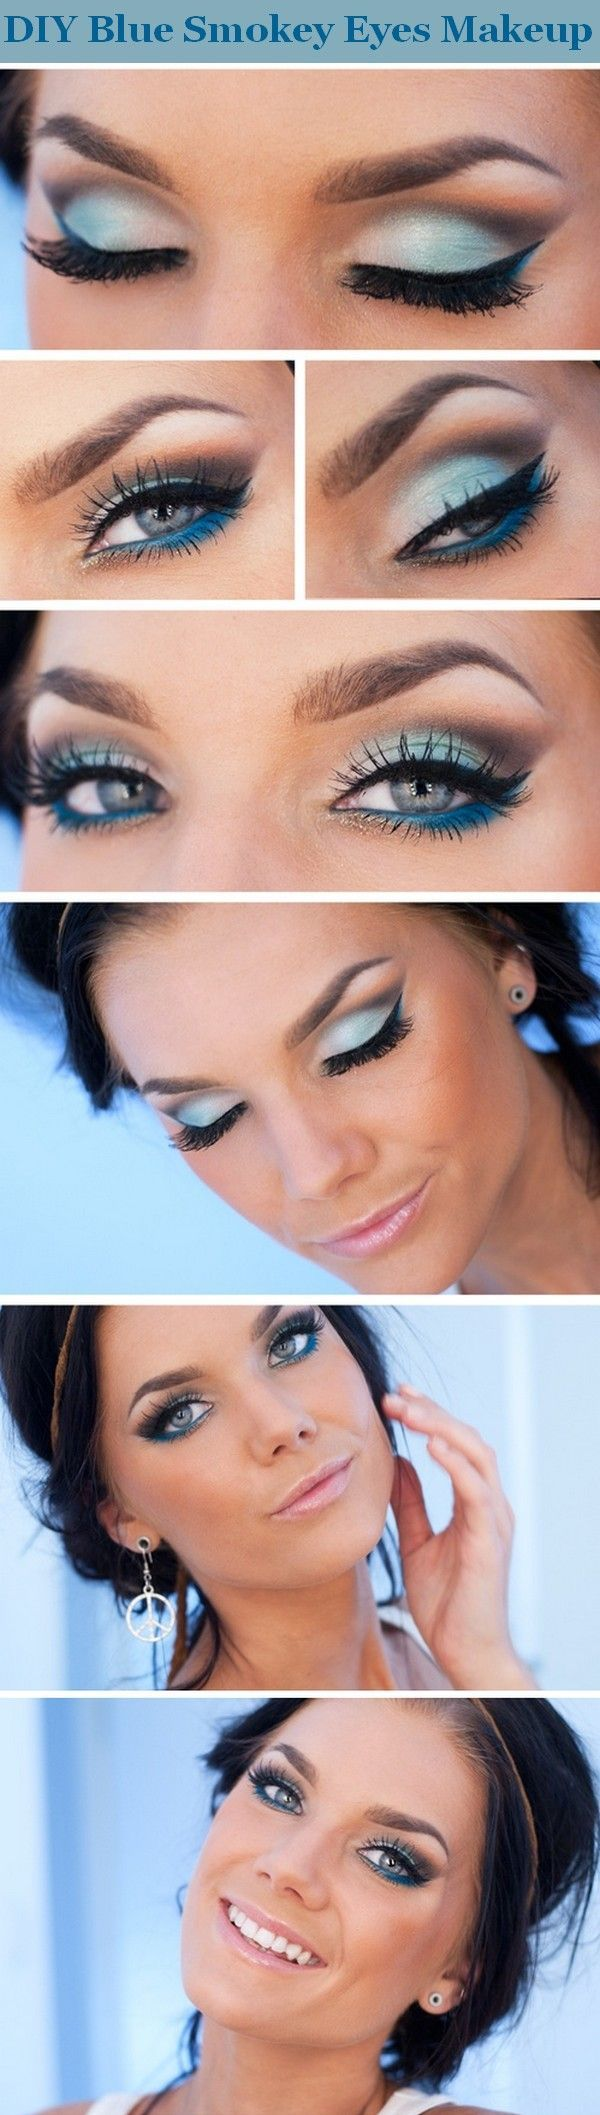 Blue smokey eyes.